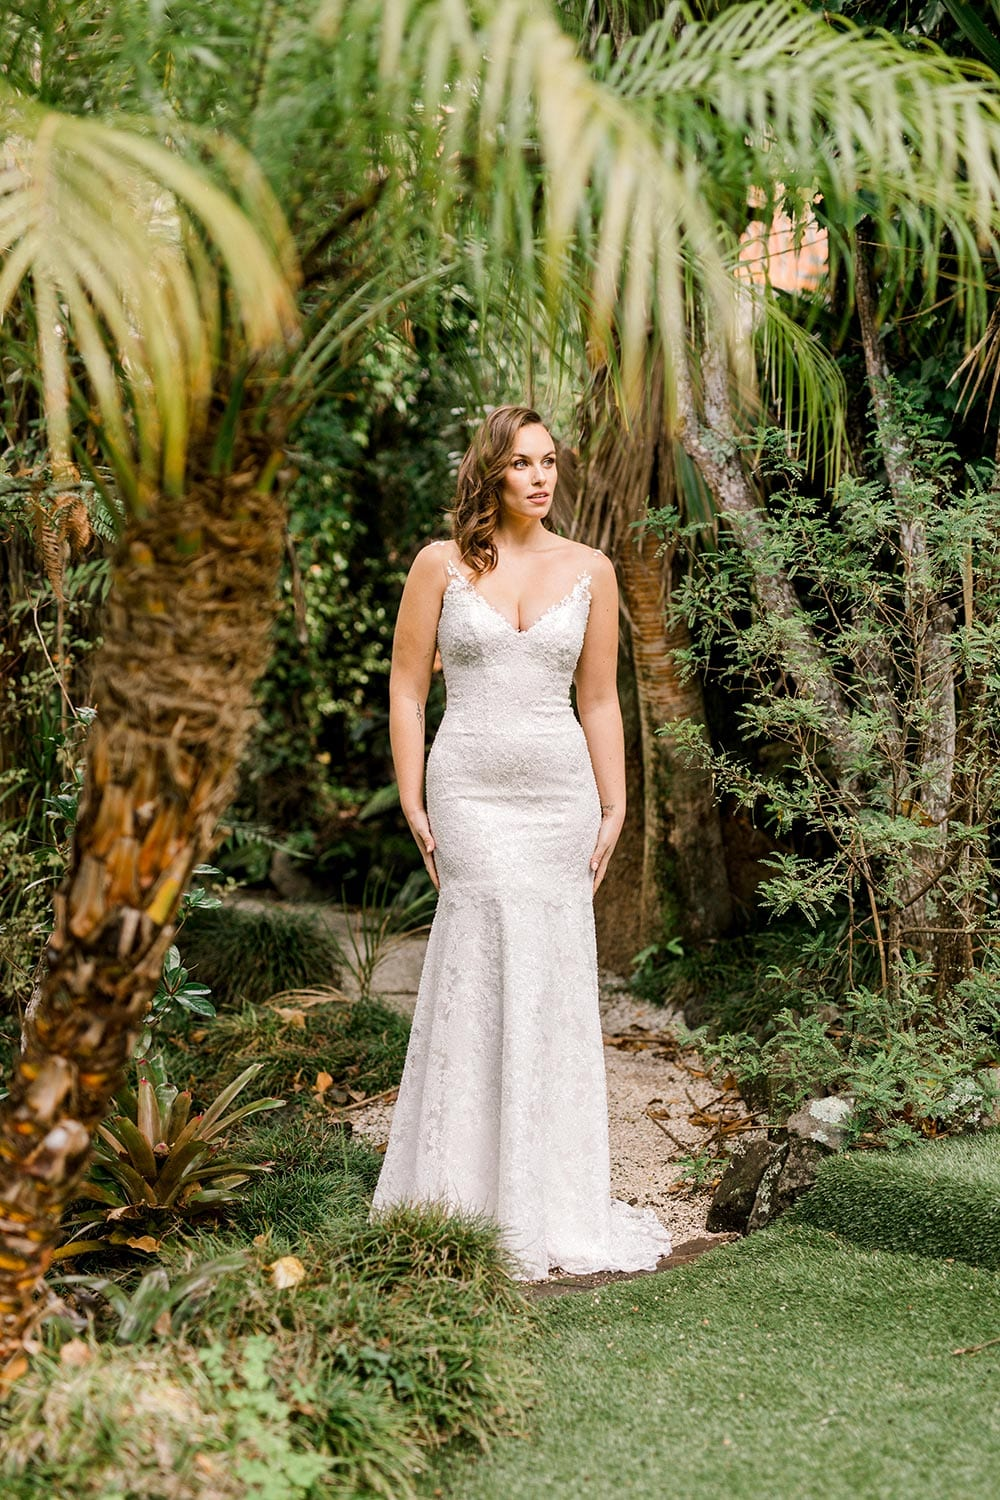 Dakota Wedding Dress from Vinka Design. This full-lace wedding dress is form fitting, sculpting the body beautifully. Delicate beaded lace flowers are hand-appliqued up the sheer nude tulle straps on both the front & back. Full length portrait of gown, photographed at Tui Hills by Emmaline Photography.